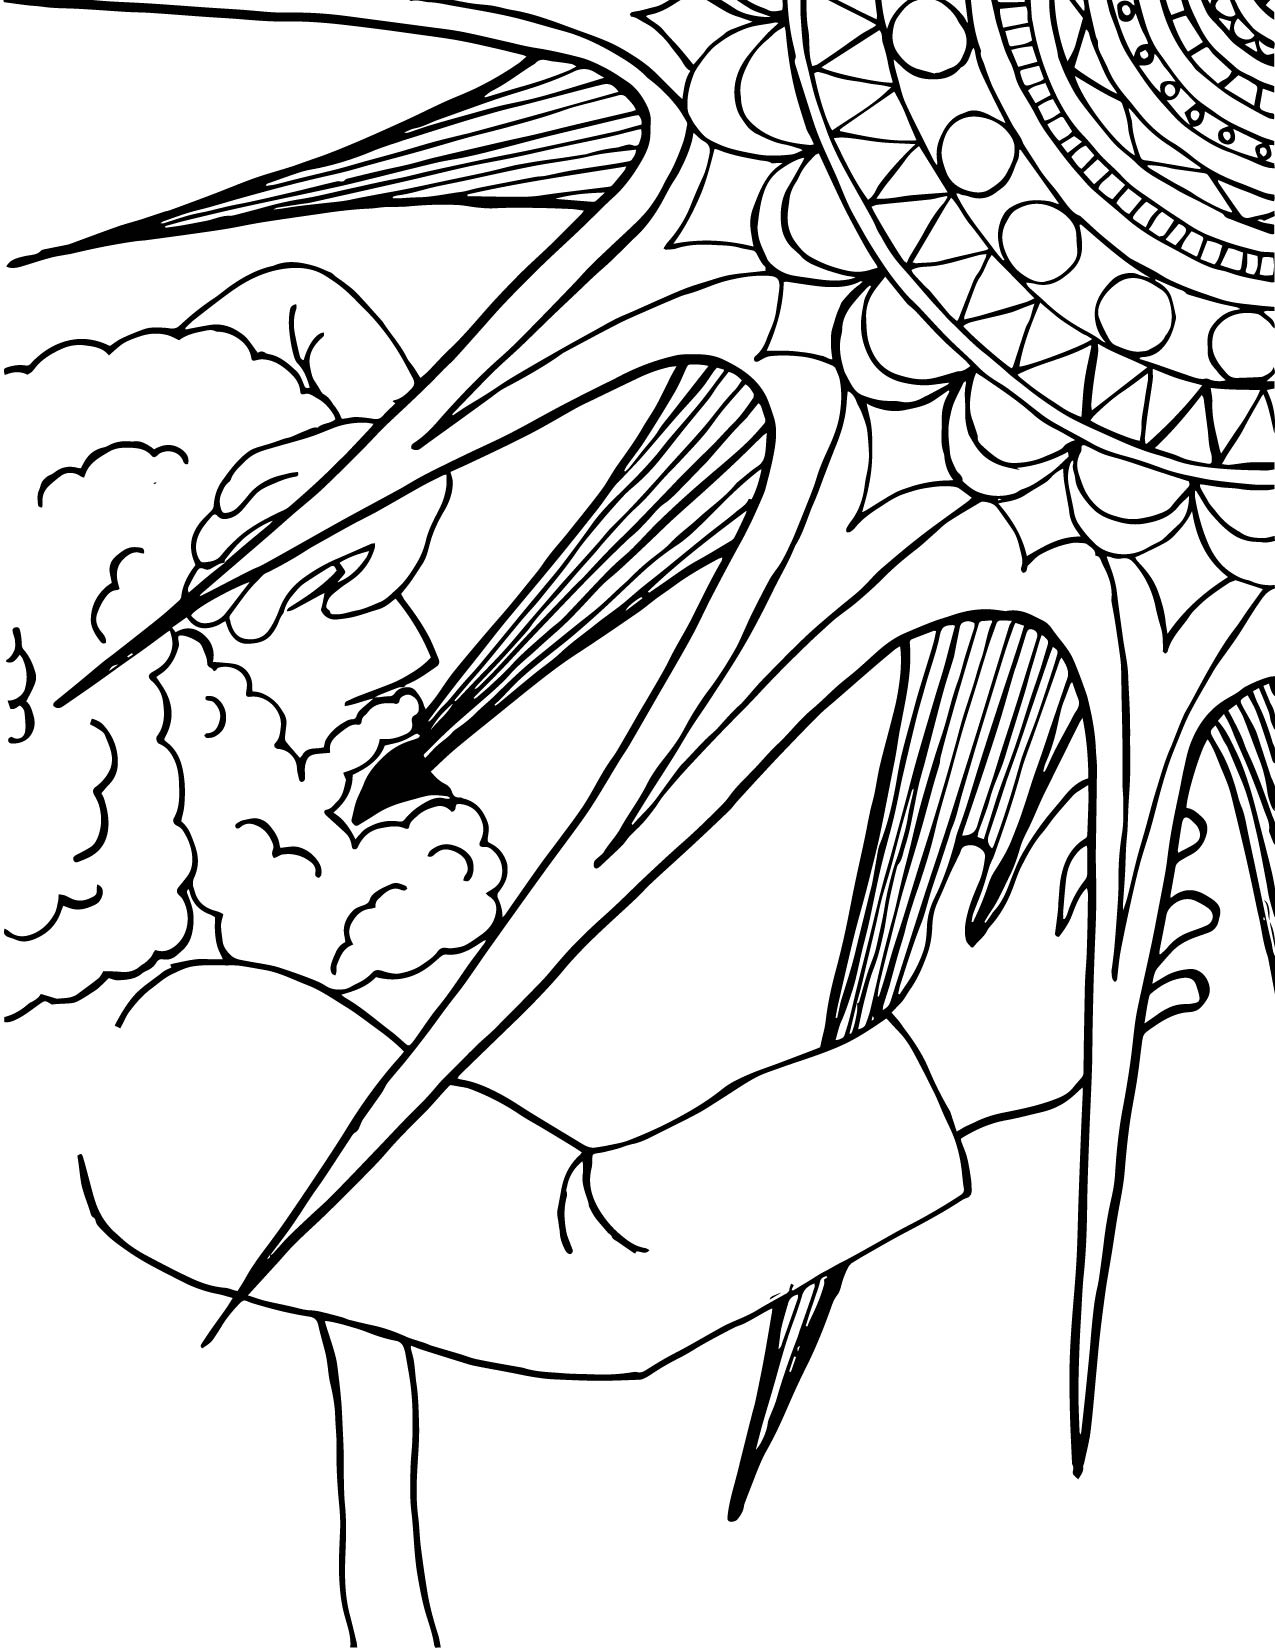 1275x1650 Conversion Of Saint Paul Coloring Page The Homely Hours